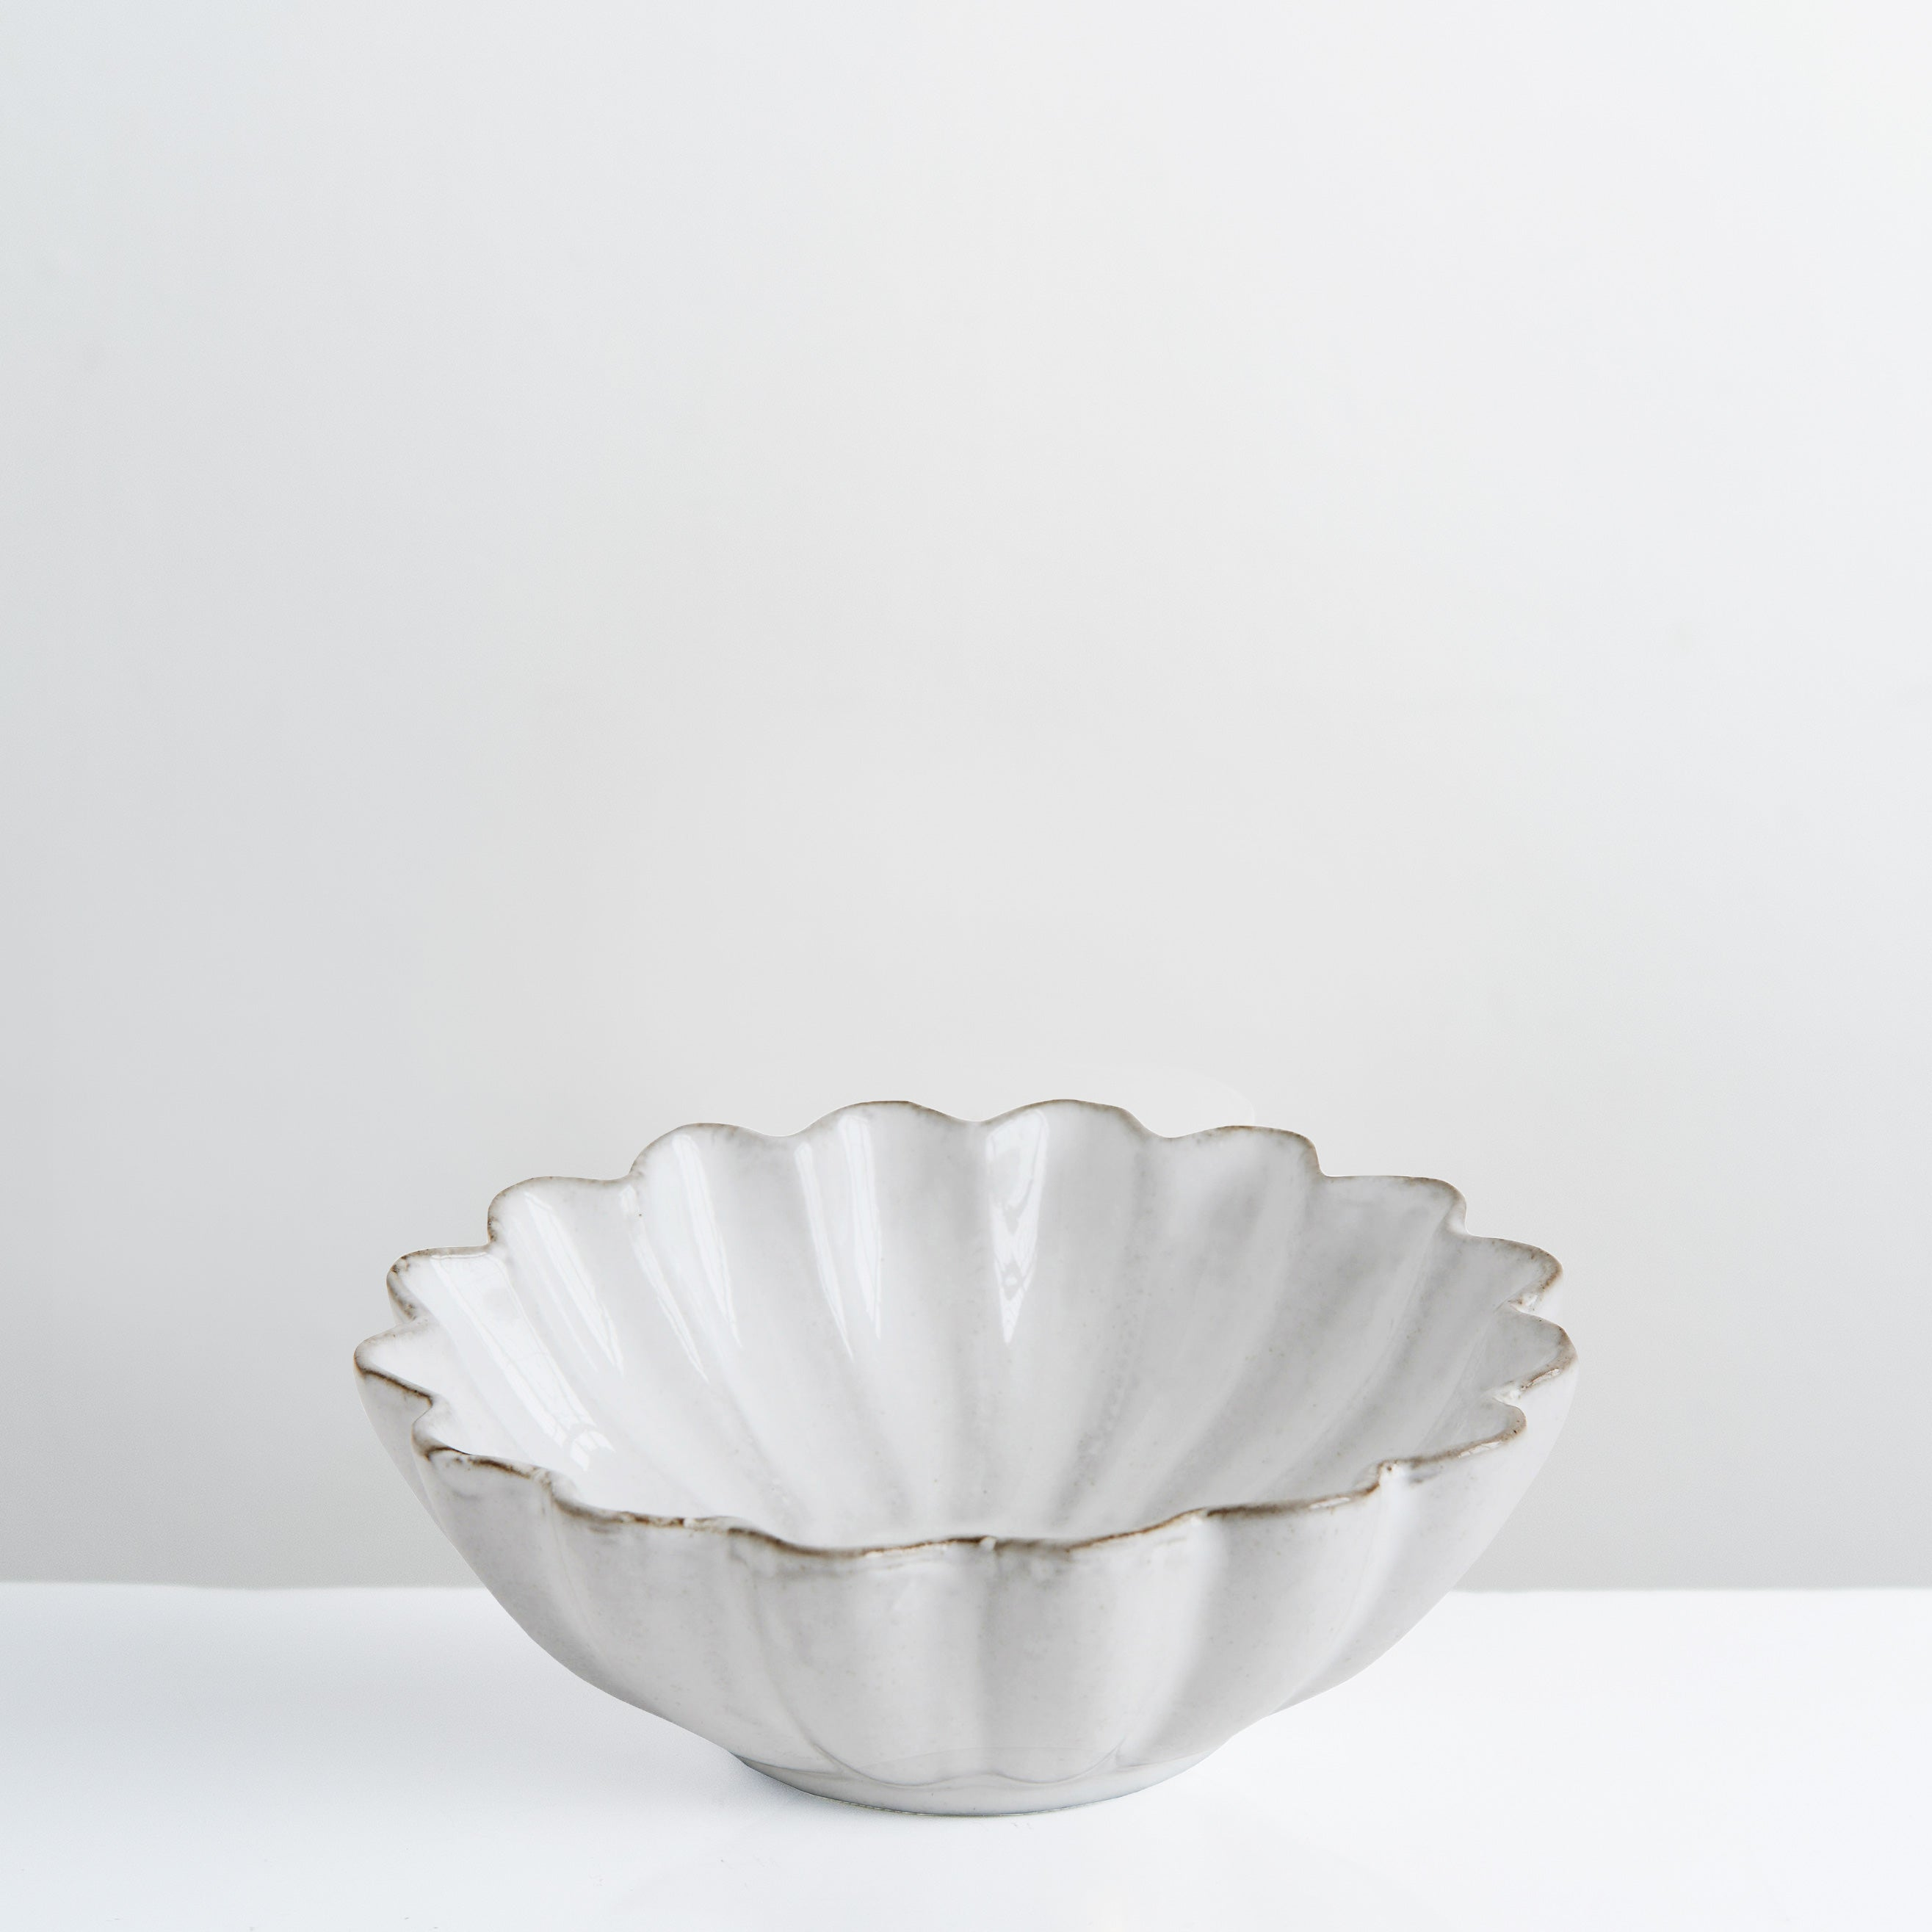 Handmade white glazed Flora bowl